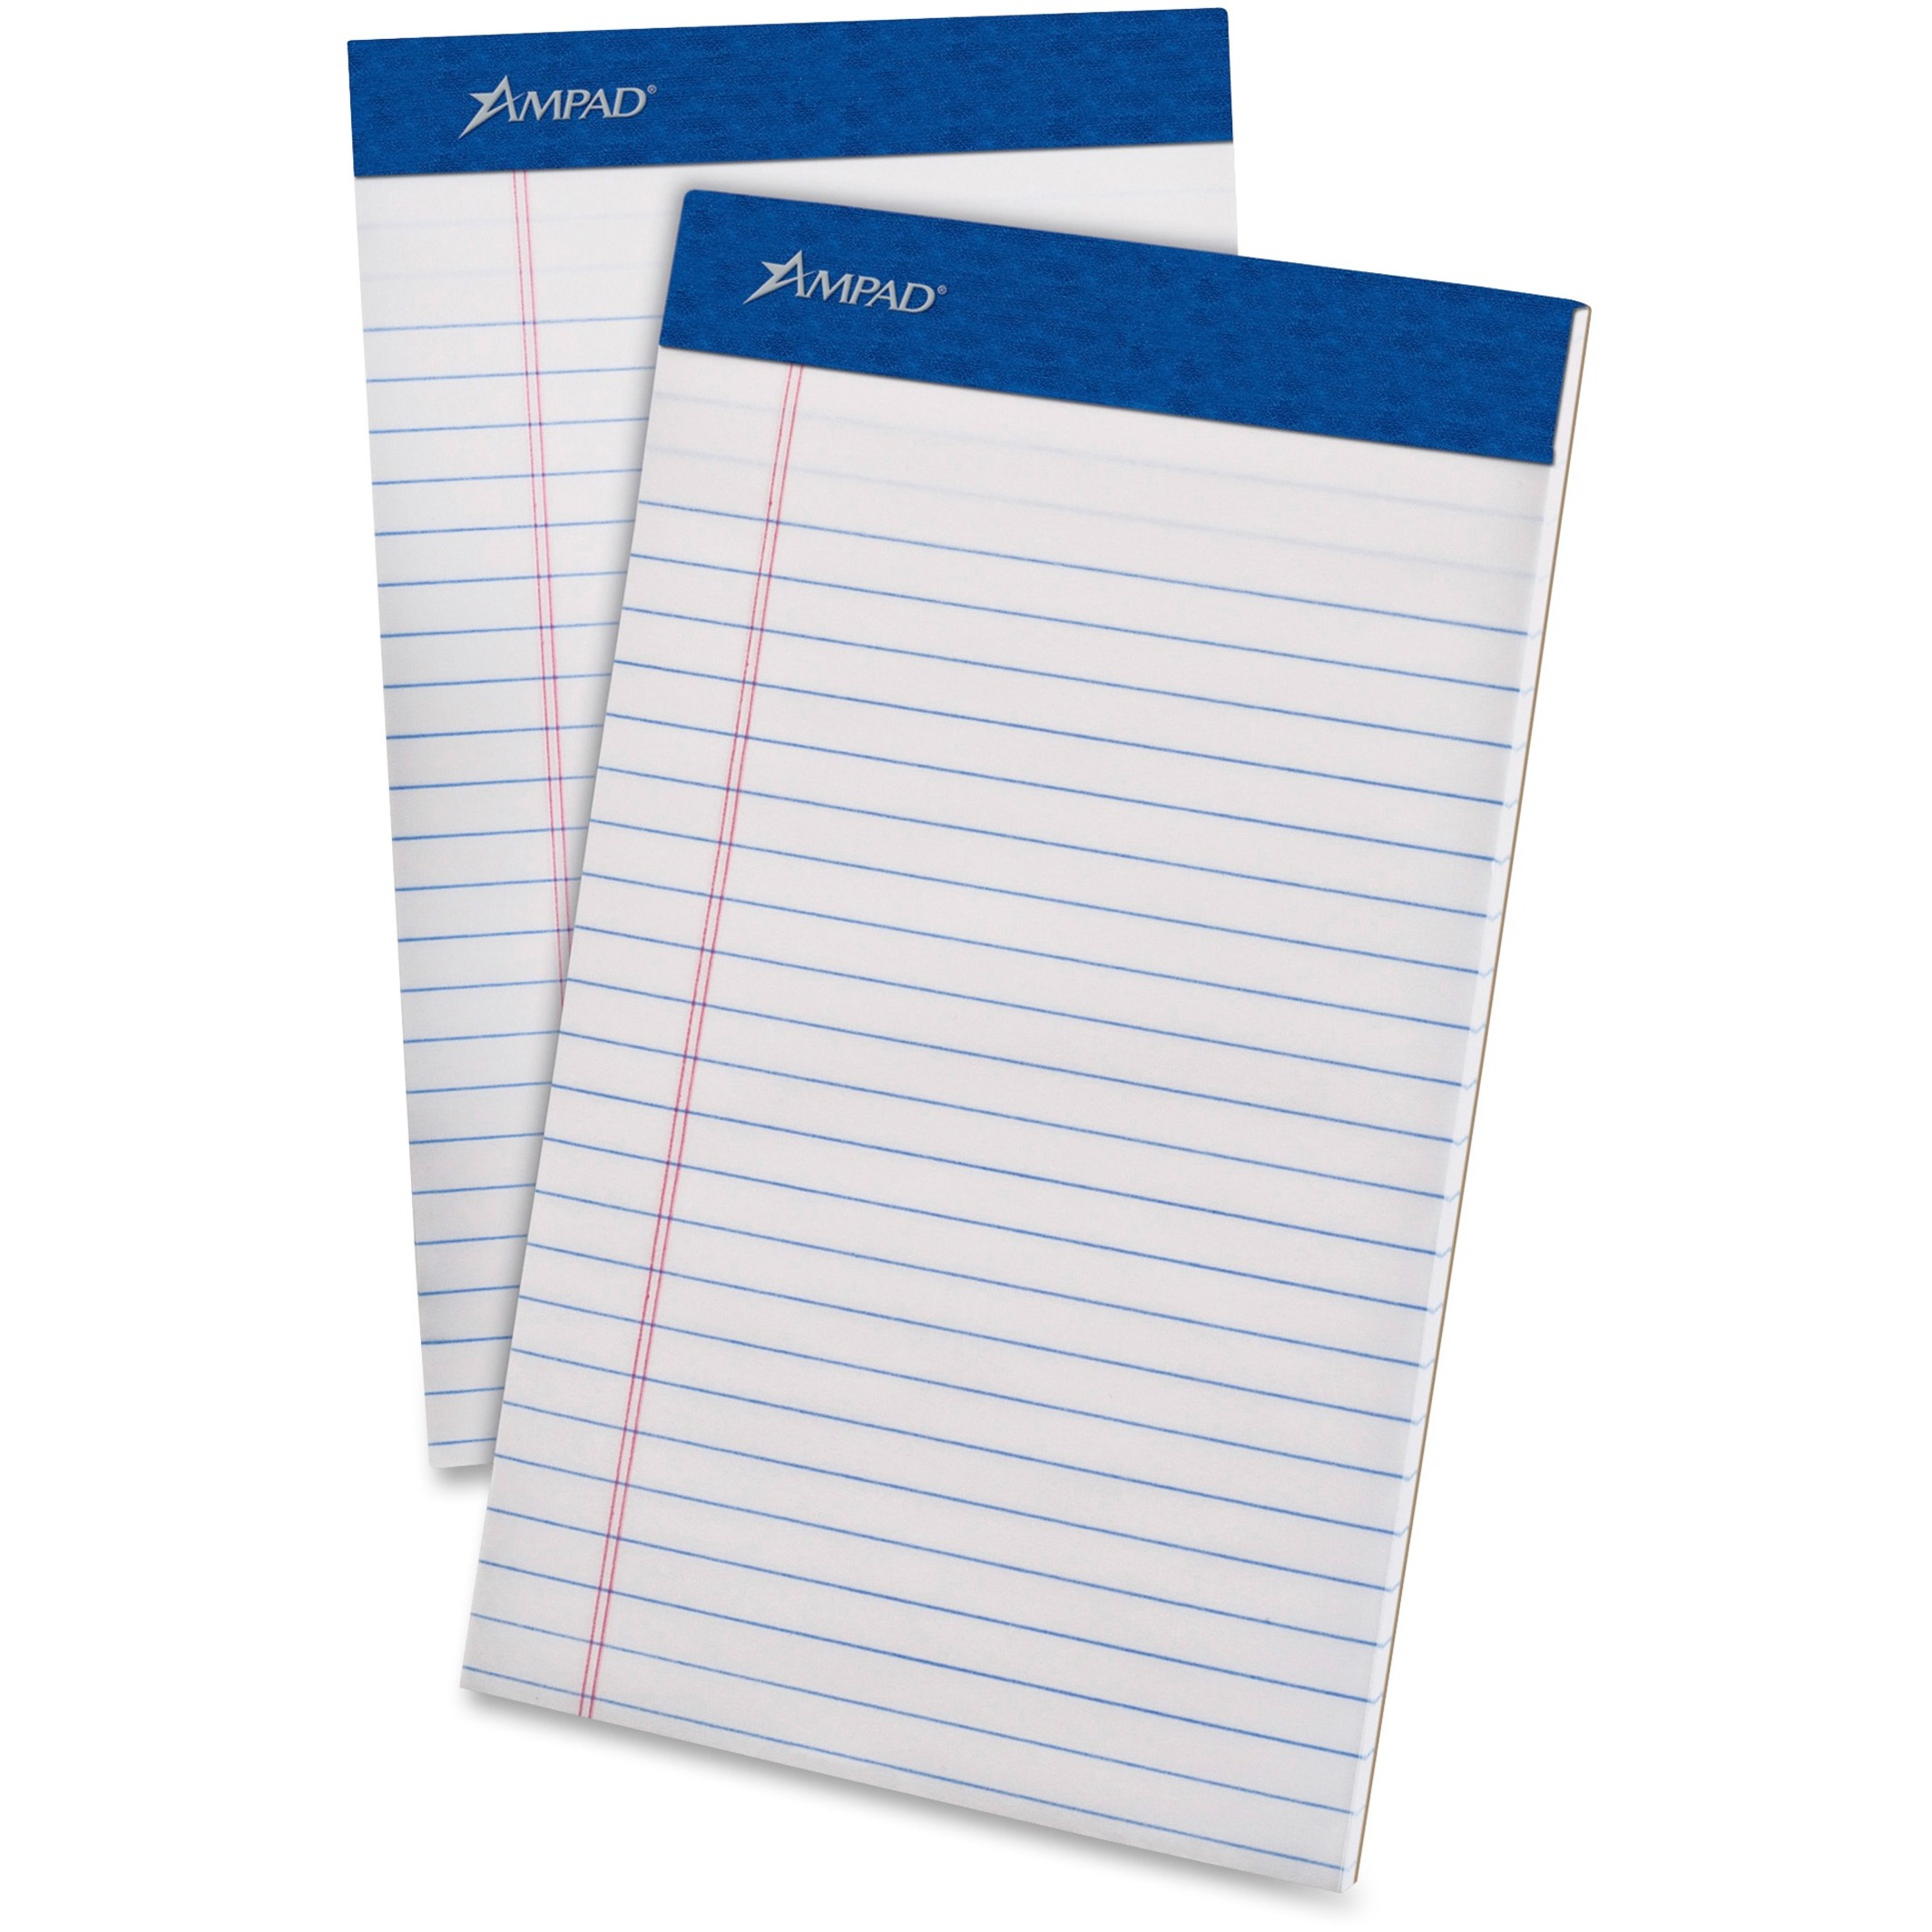 Perforated Writing Pad, Narrow, 5 x 8, White, 50 Sheets, Dozen